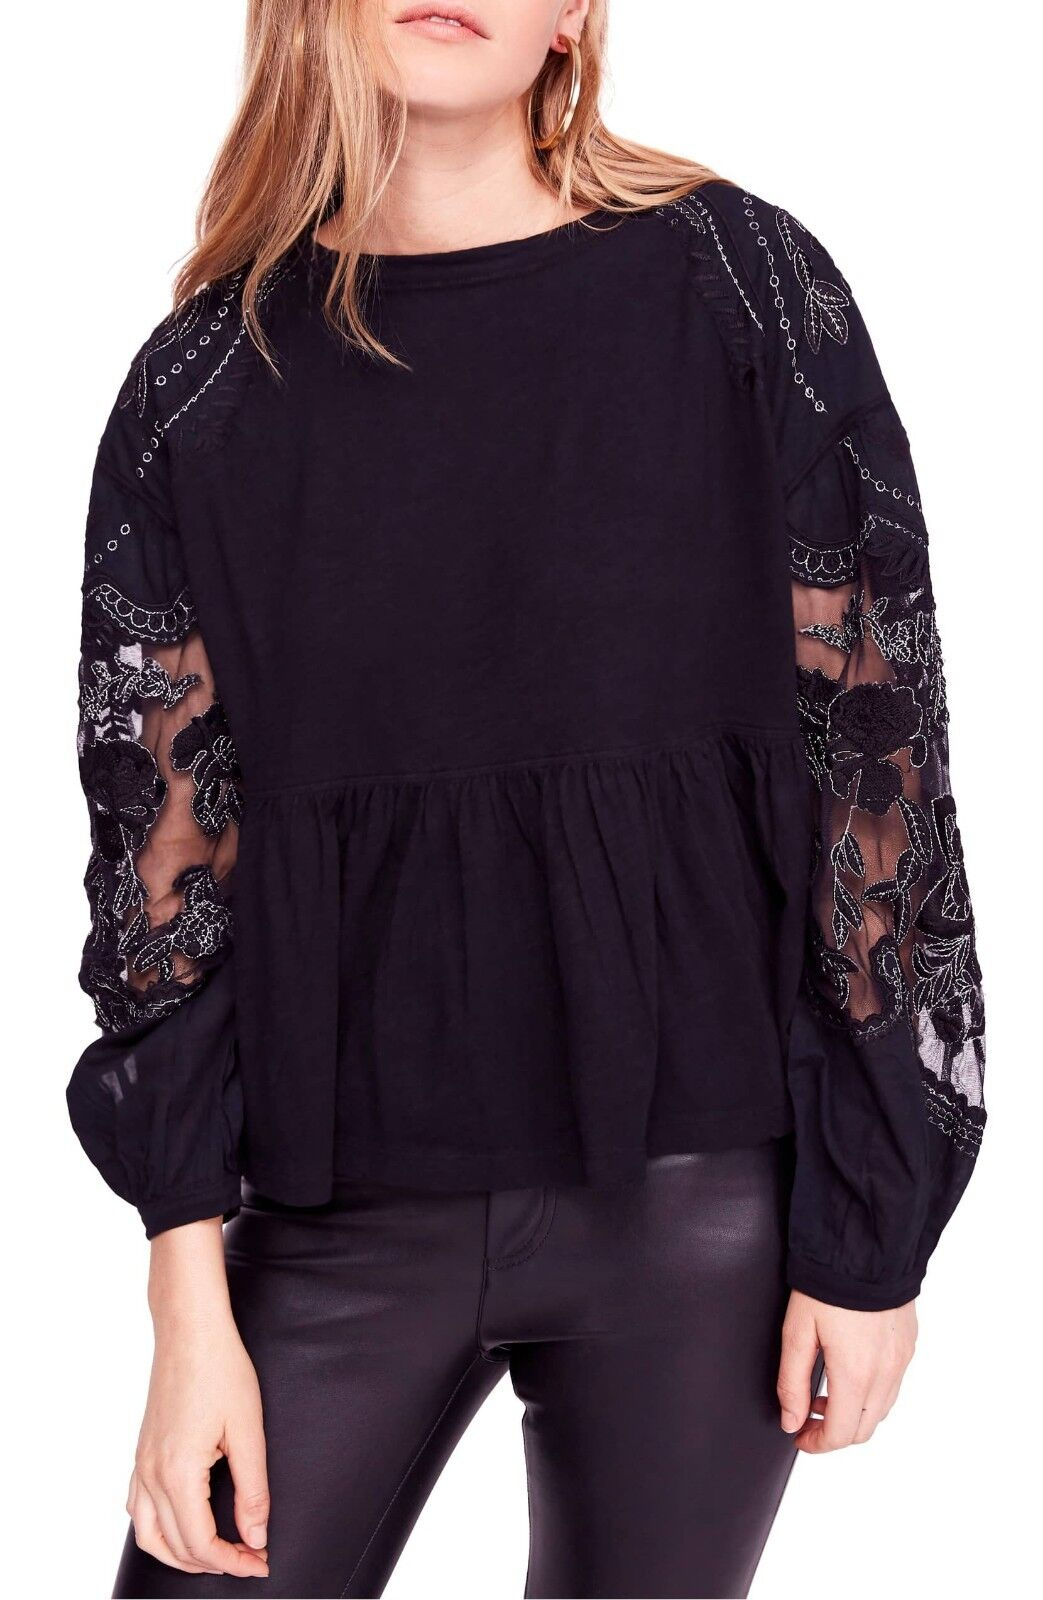 NWT Free People Penny Top Retail